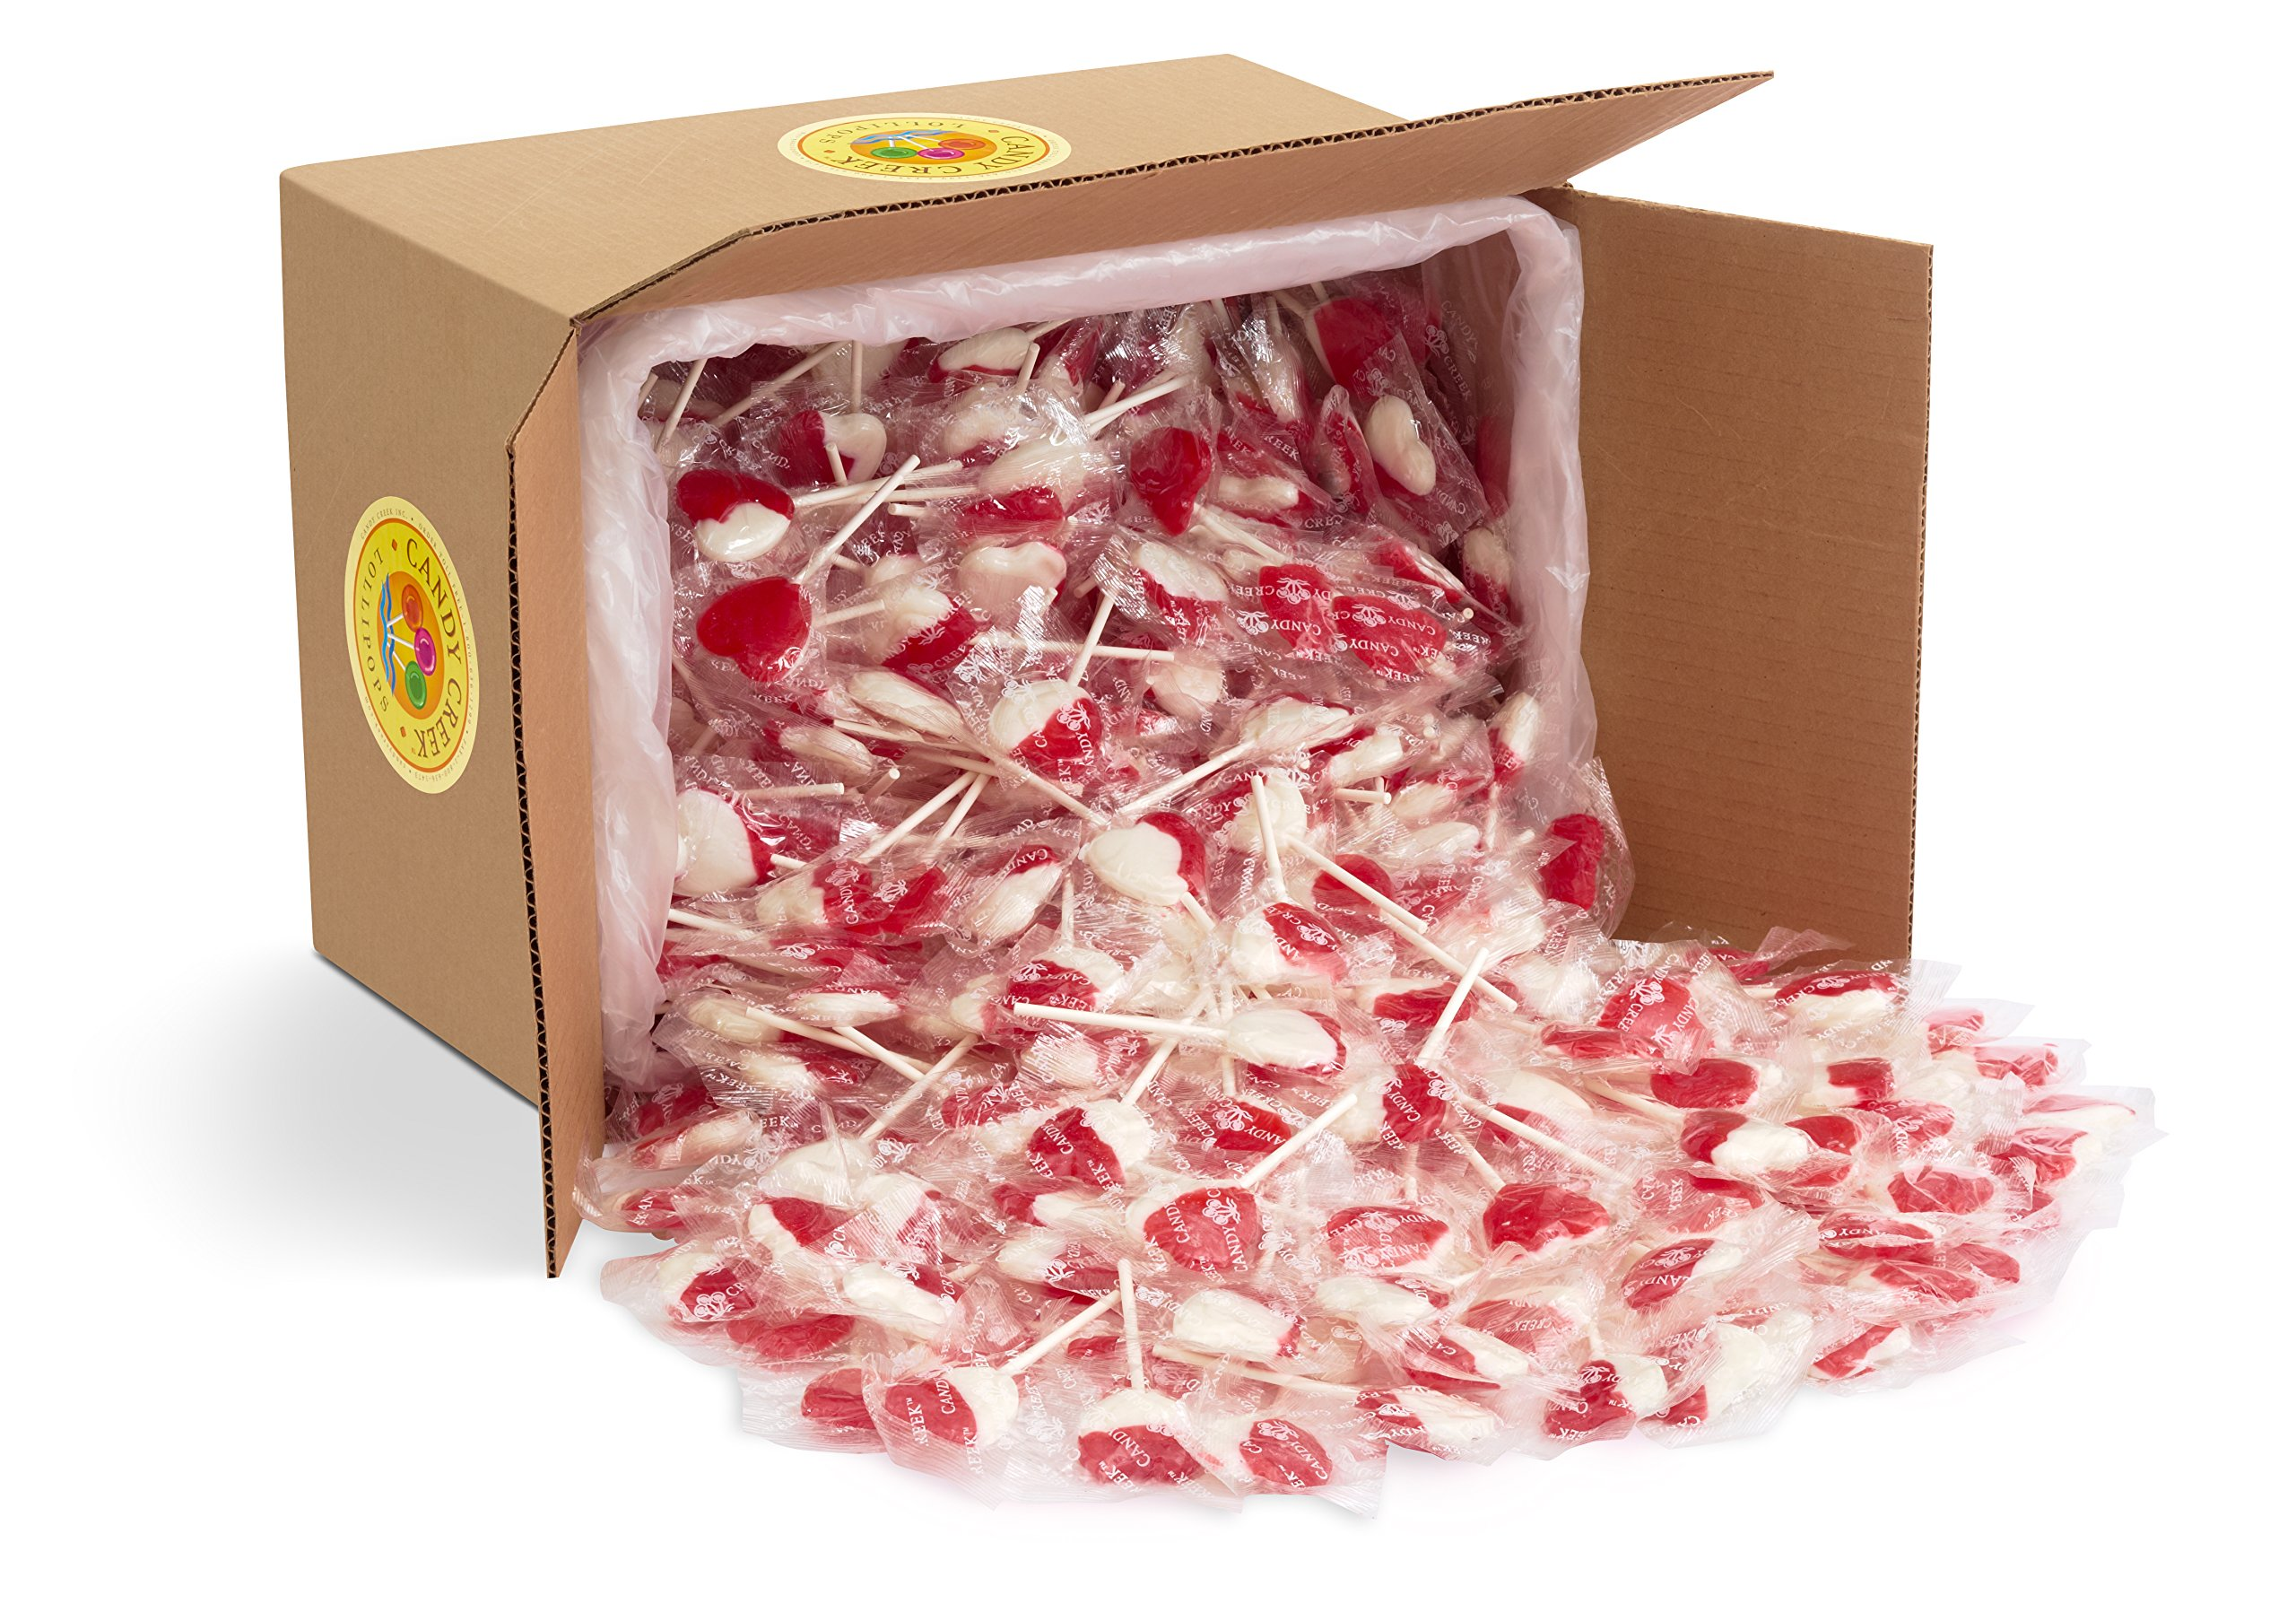 Heart Lollipops by Candy Creek, Bulk 18 lb. Carton, Strawberry Cream Valentine's Candy by Candy Creek Lollipops